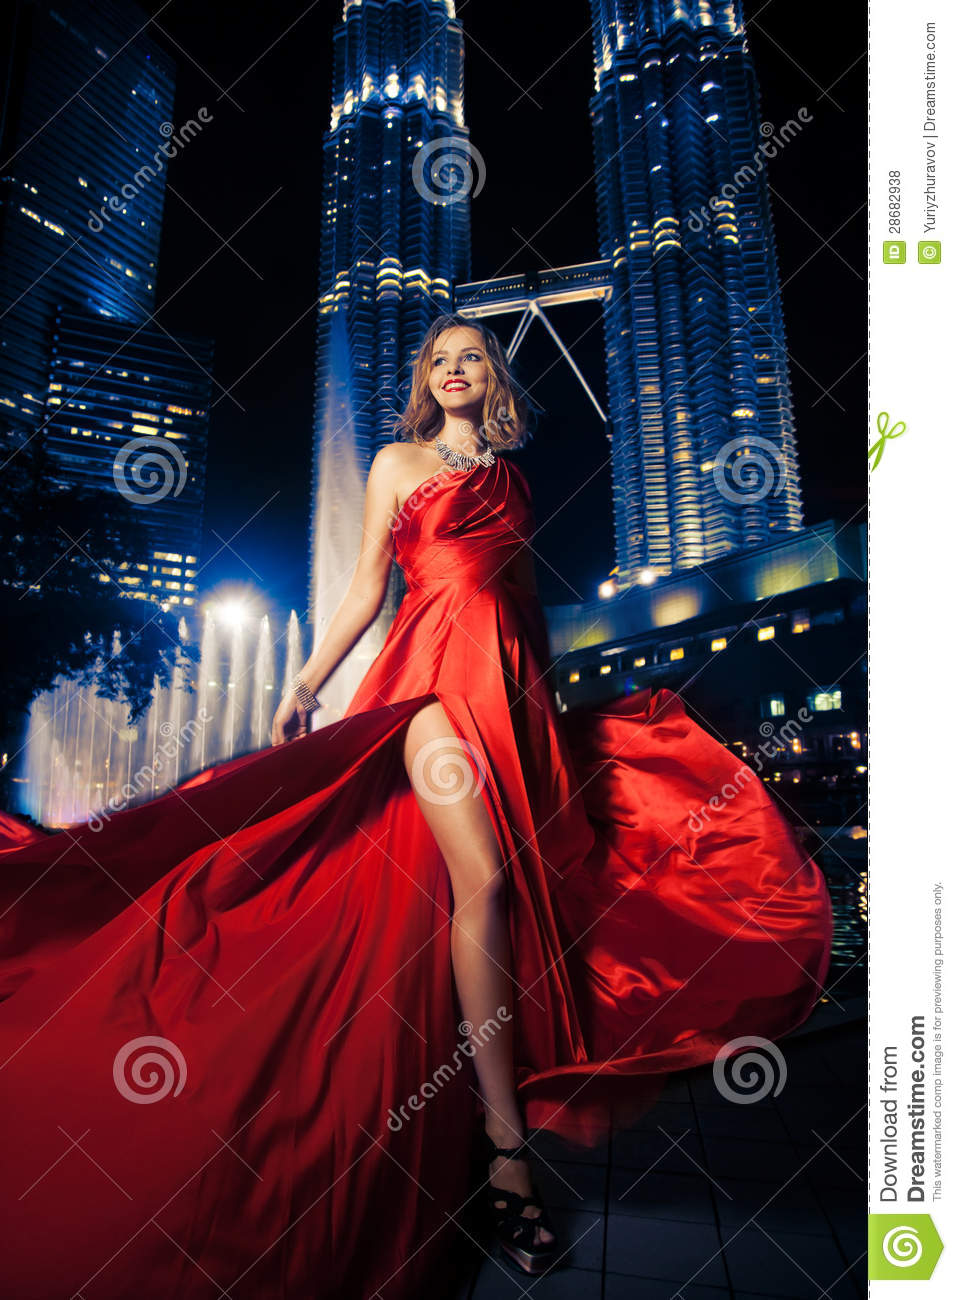 fashion lady in red dress and city lights stock photo image 28682938. Black Bedroom Furniture Sets. Home Design Ideas